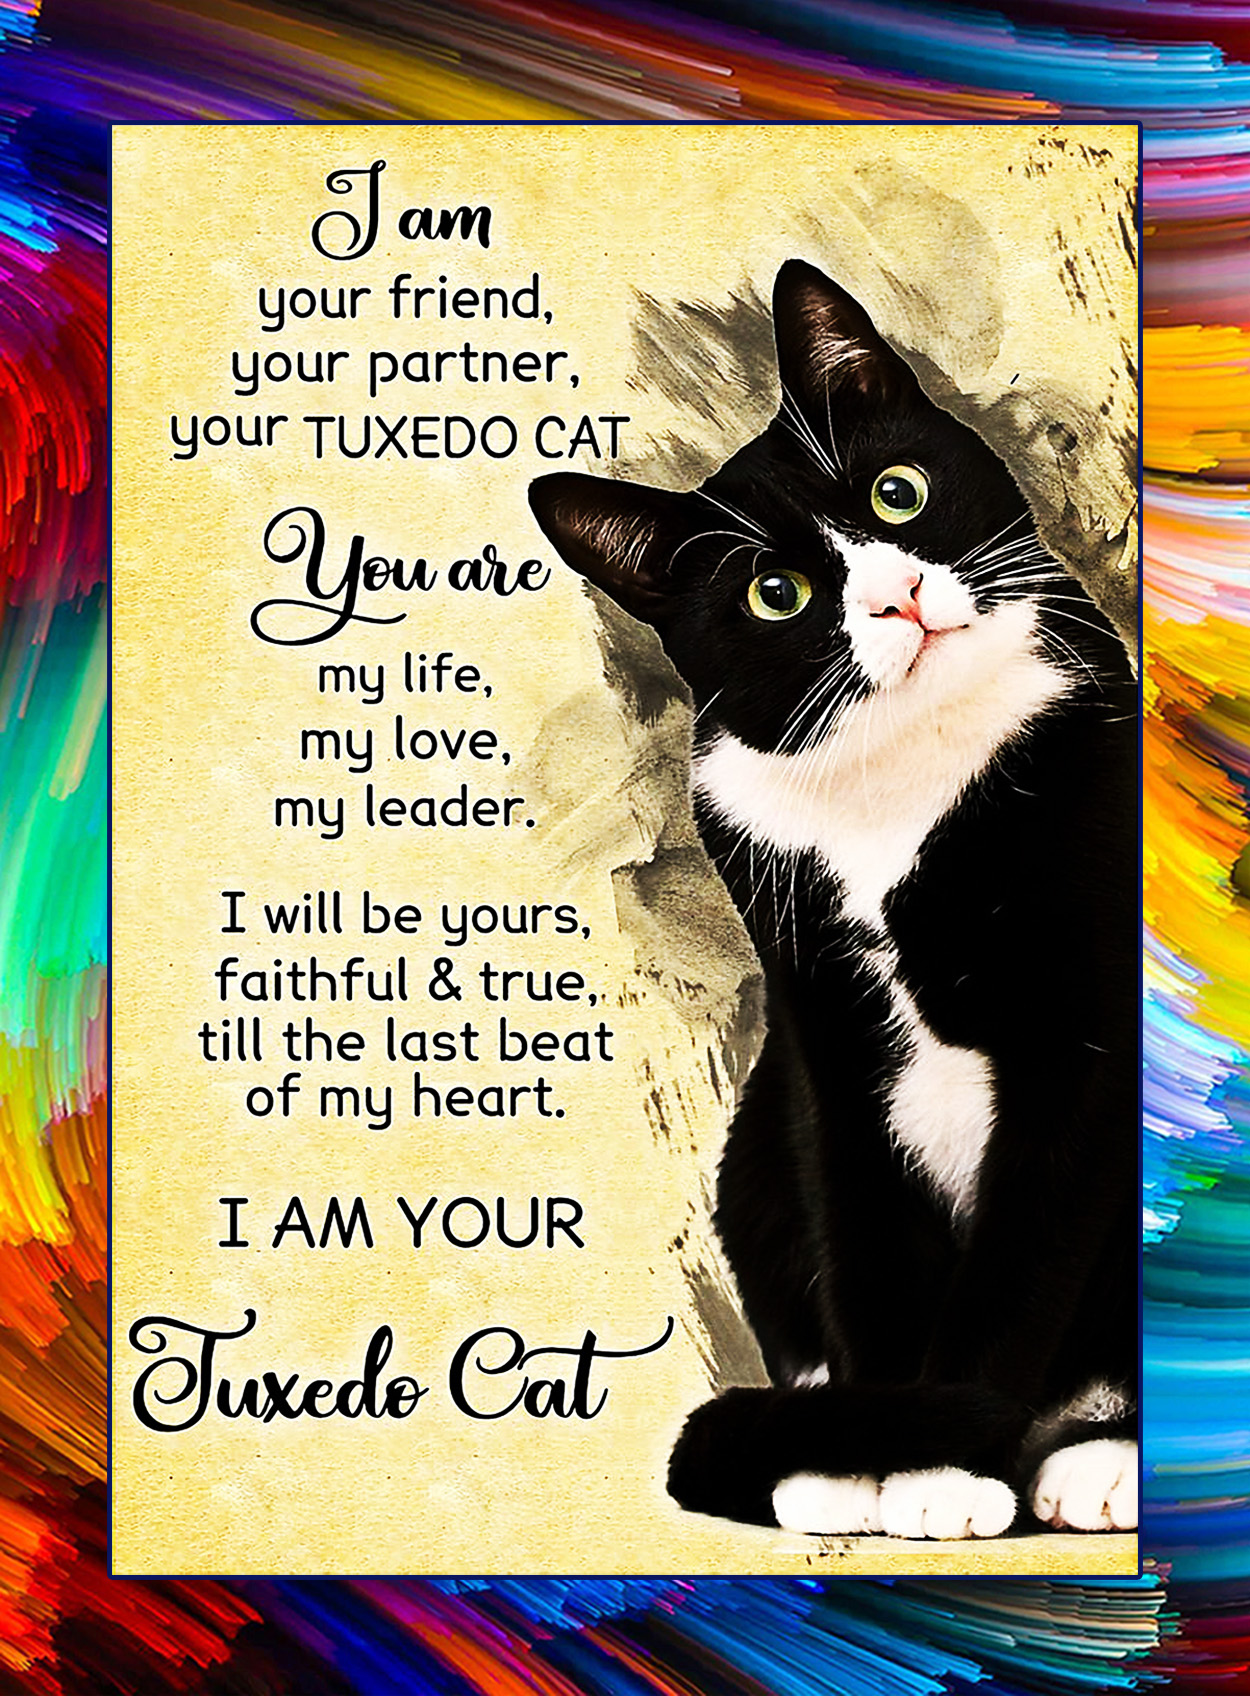 I am your friend tuxedo cat poster - A2